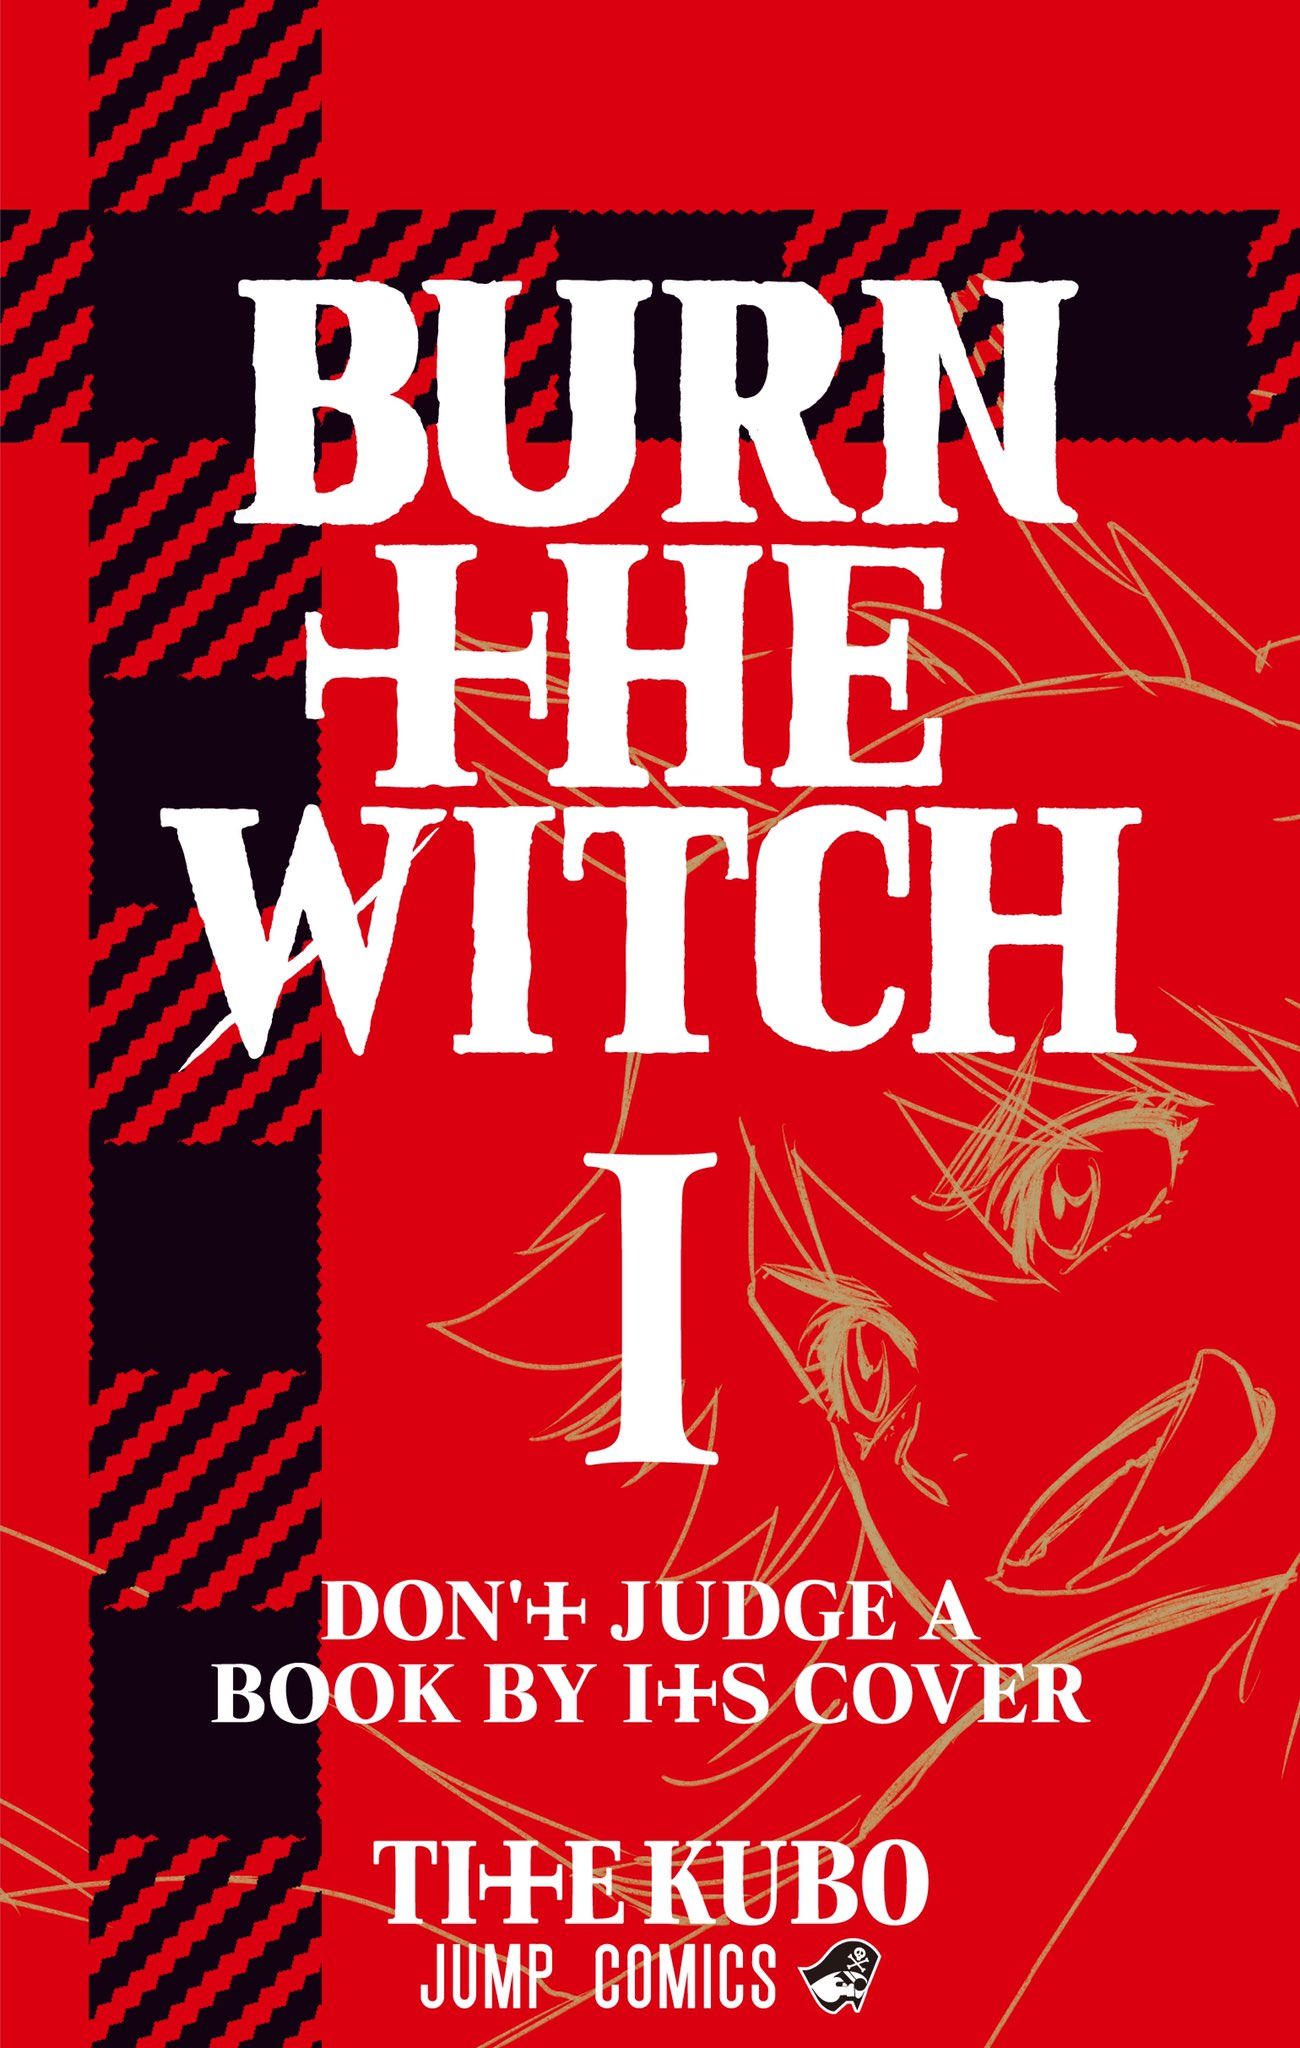 BURN THE WITCH Vol.1